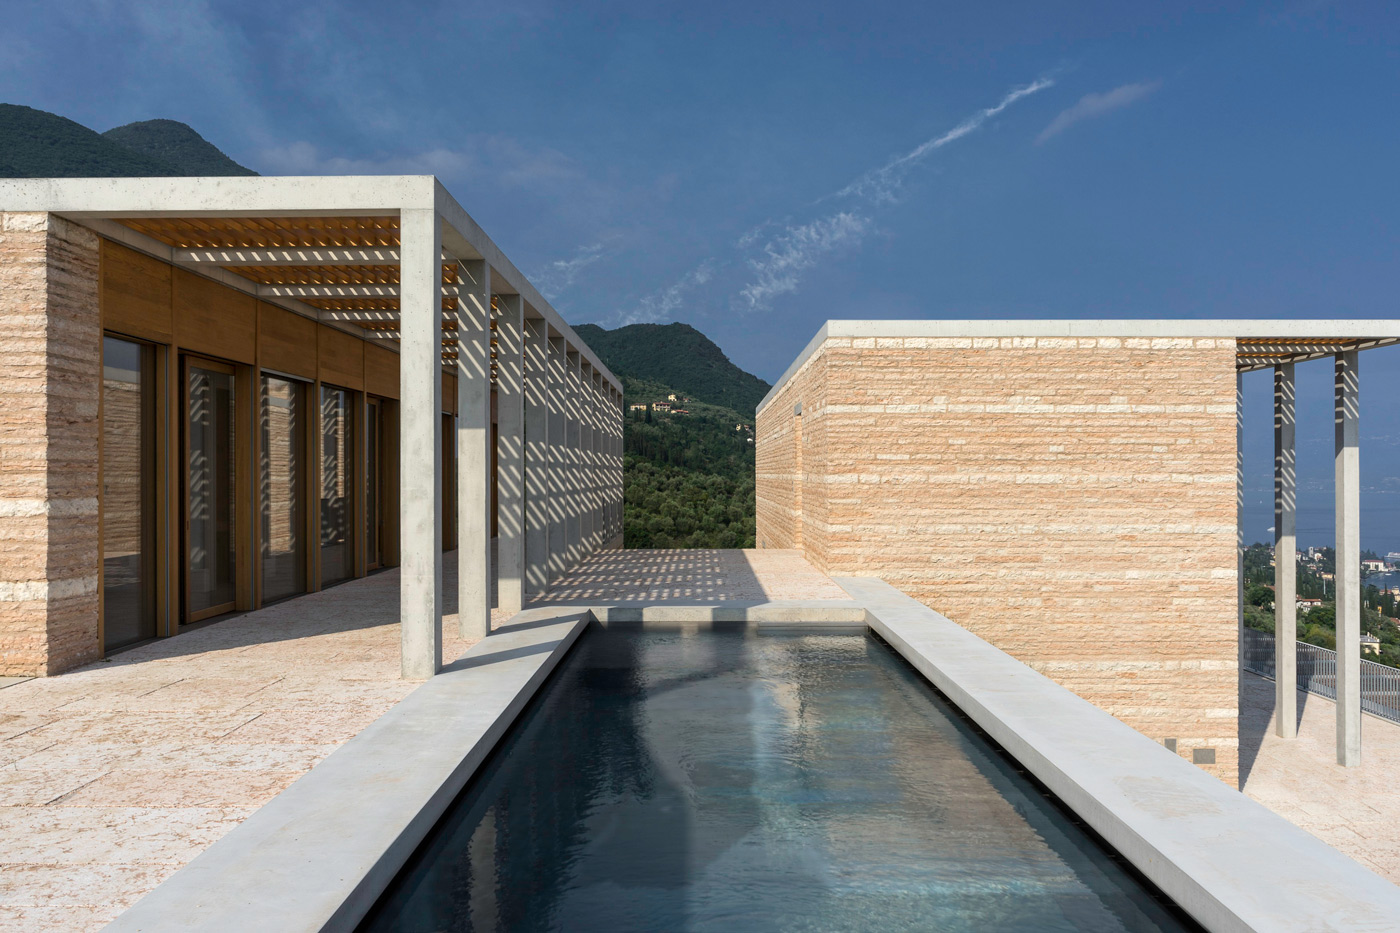 Swimming pool at Villa Eden by David Chipperfield Architects